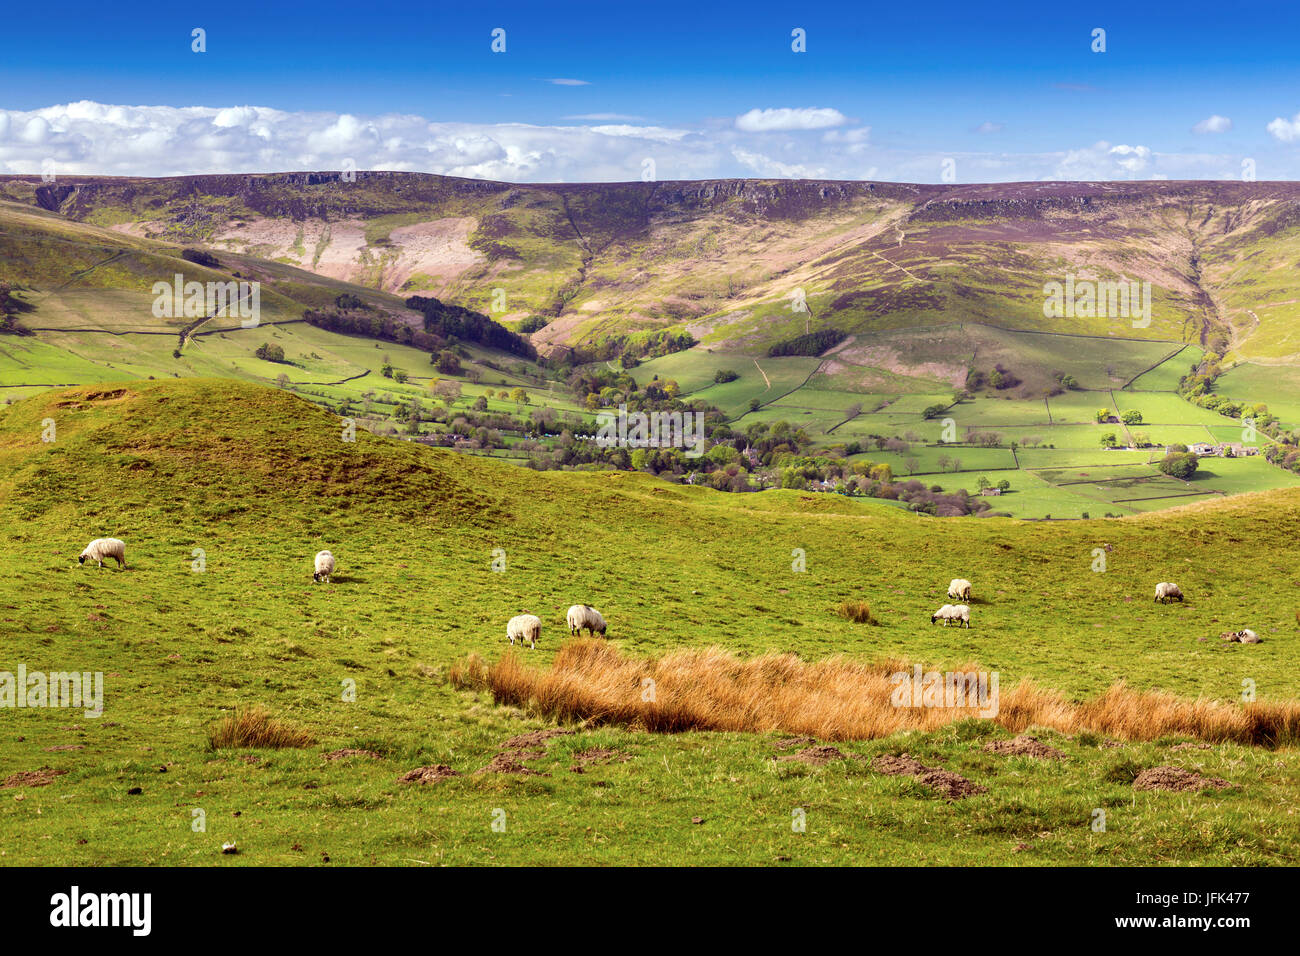 Edale village with Kinder Scout beyond in the Peak District, Derbyshire, England, UK - Stock Image